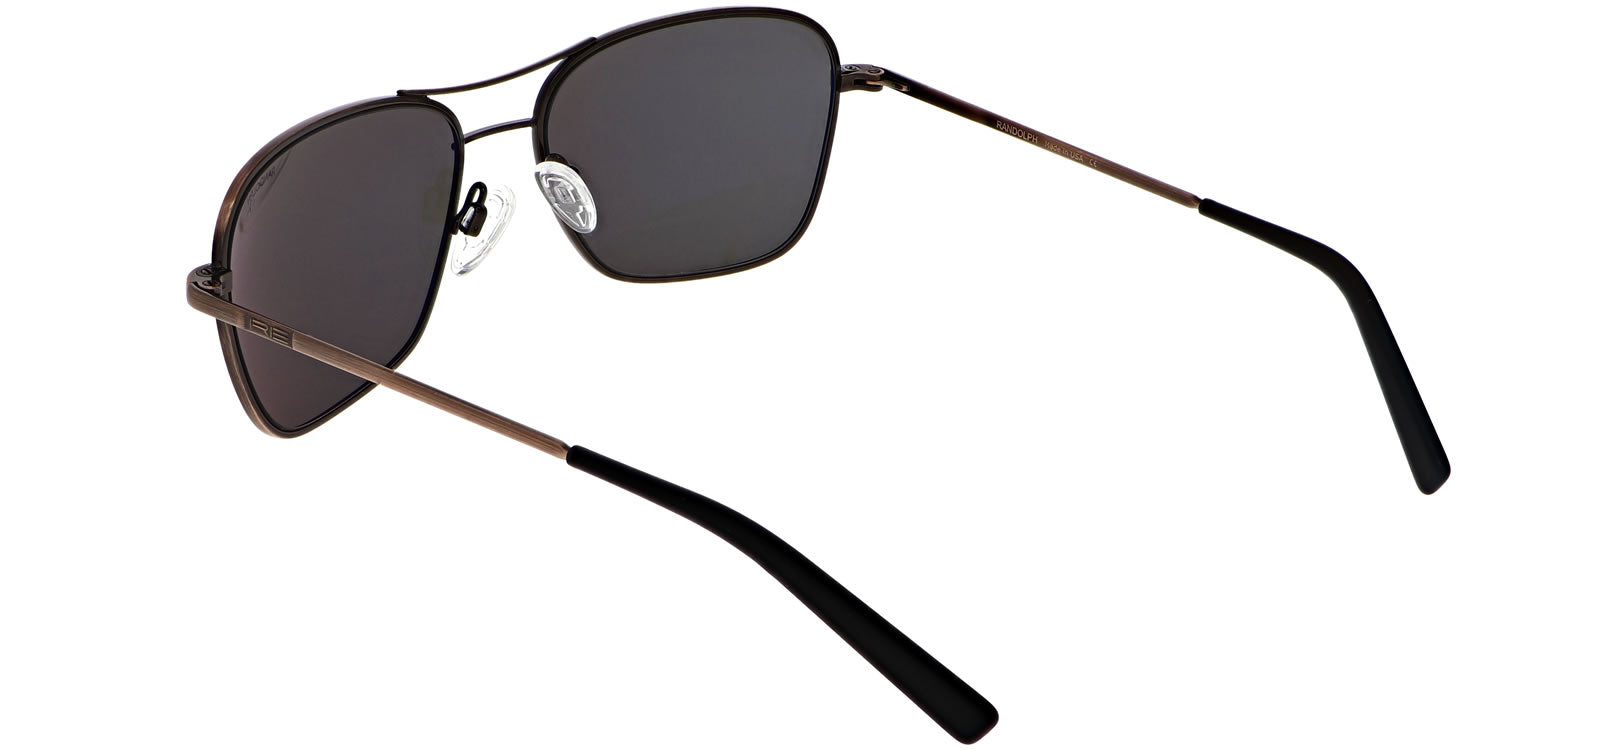 Randolph Corsair 58mm Skull Temple Polarized Lens Sunglasses